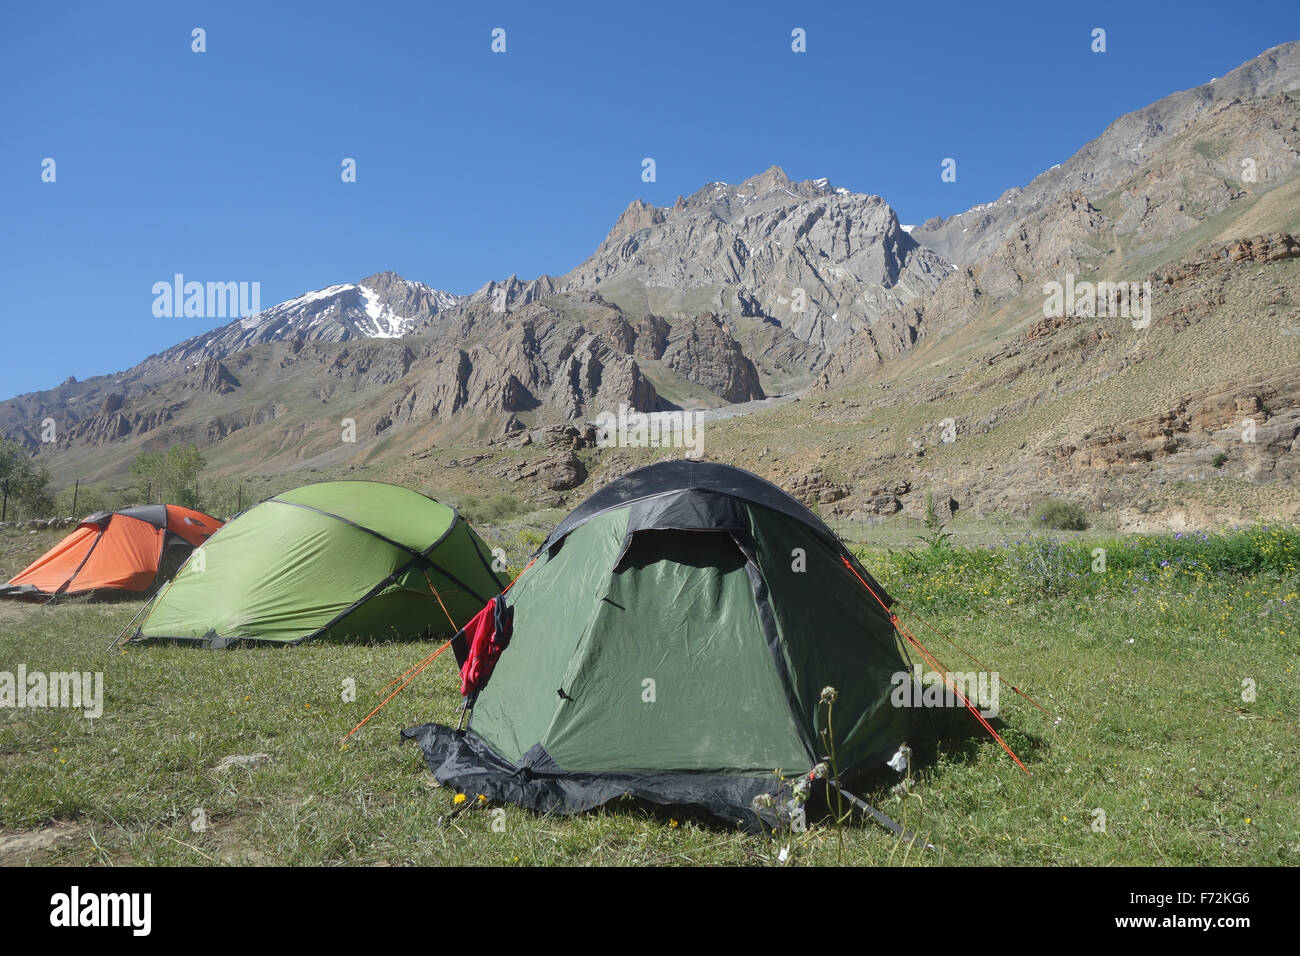 camping in the remote Spiti Valley, Himachal Pradesh, Himalayas - Stock Image